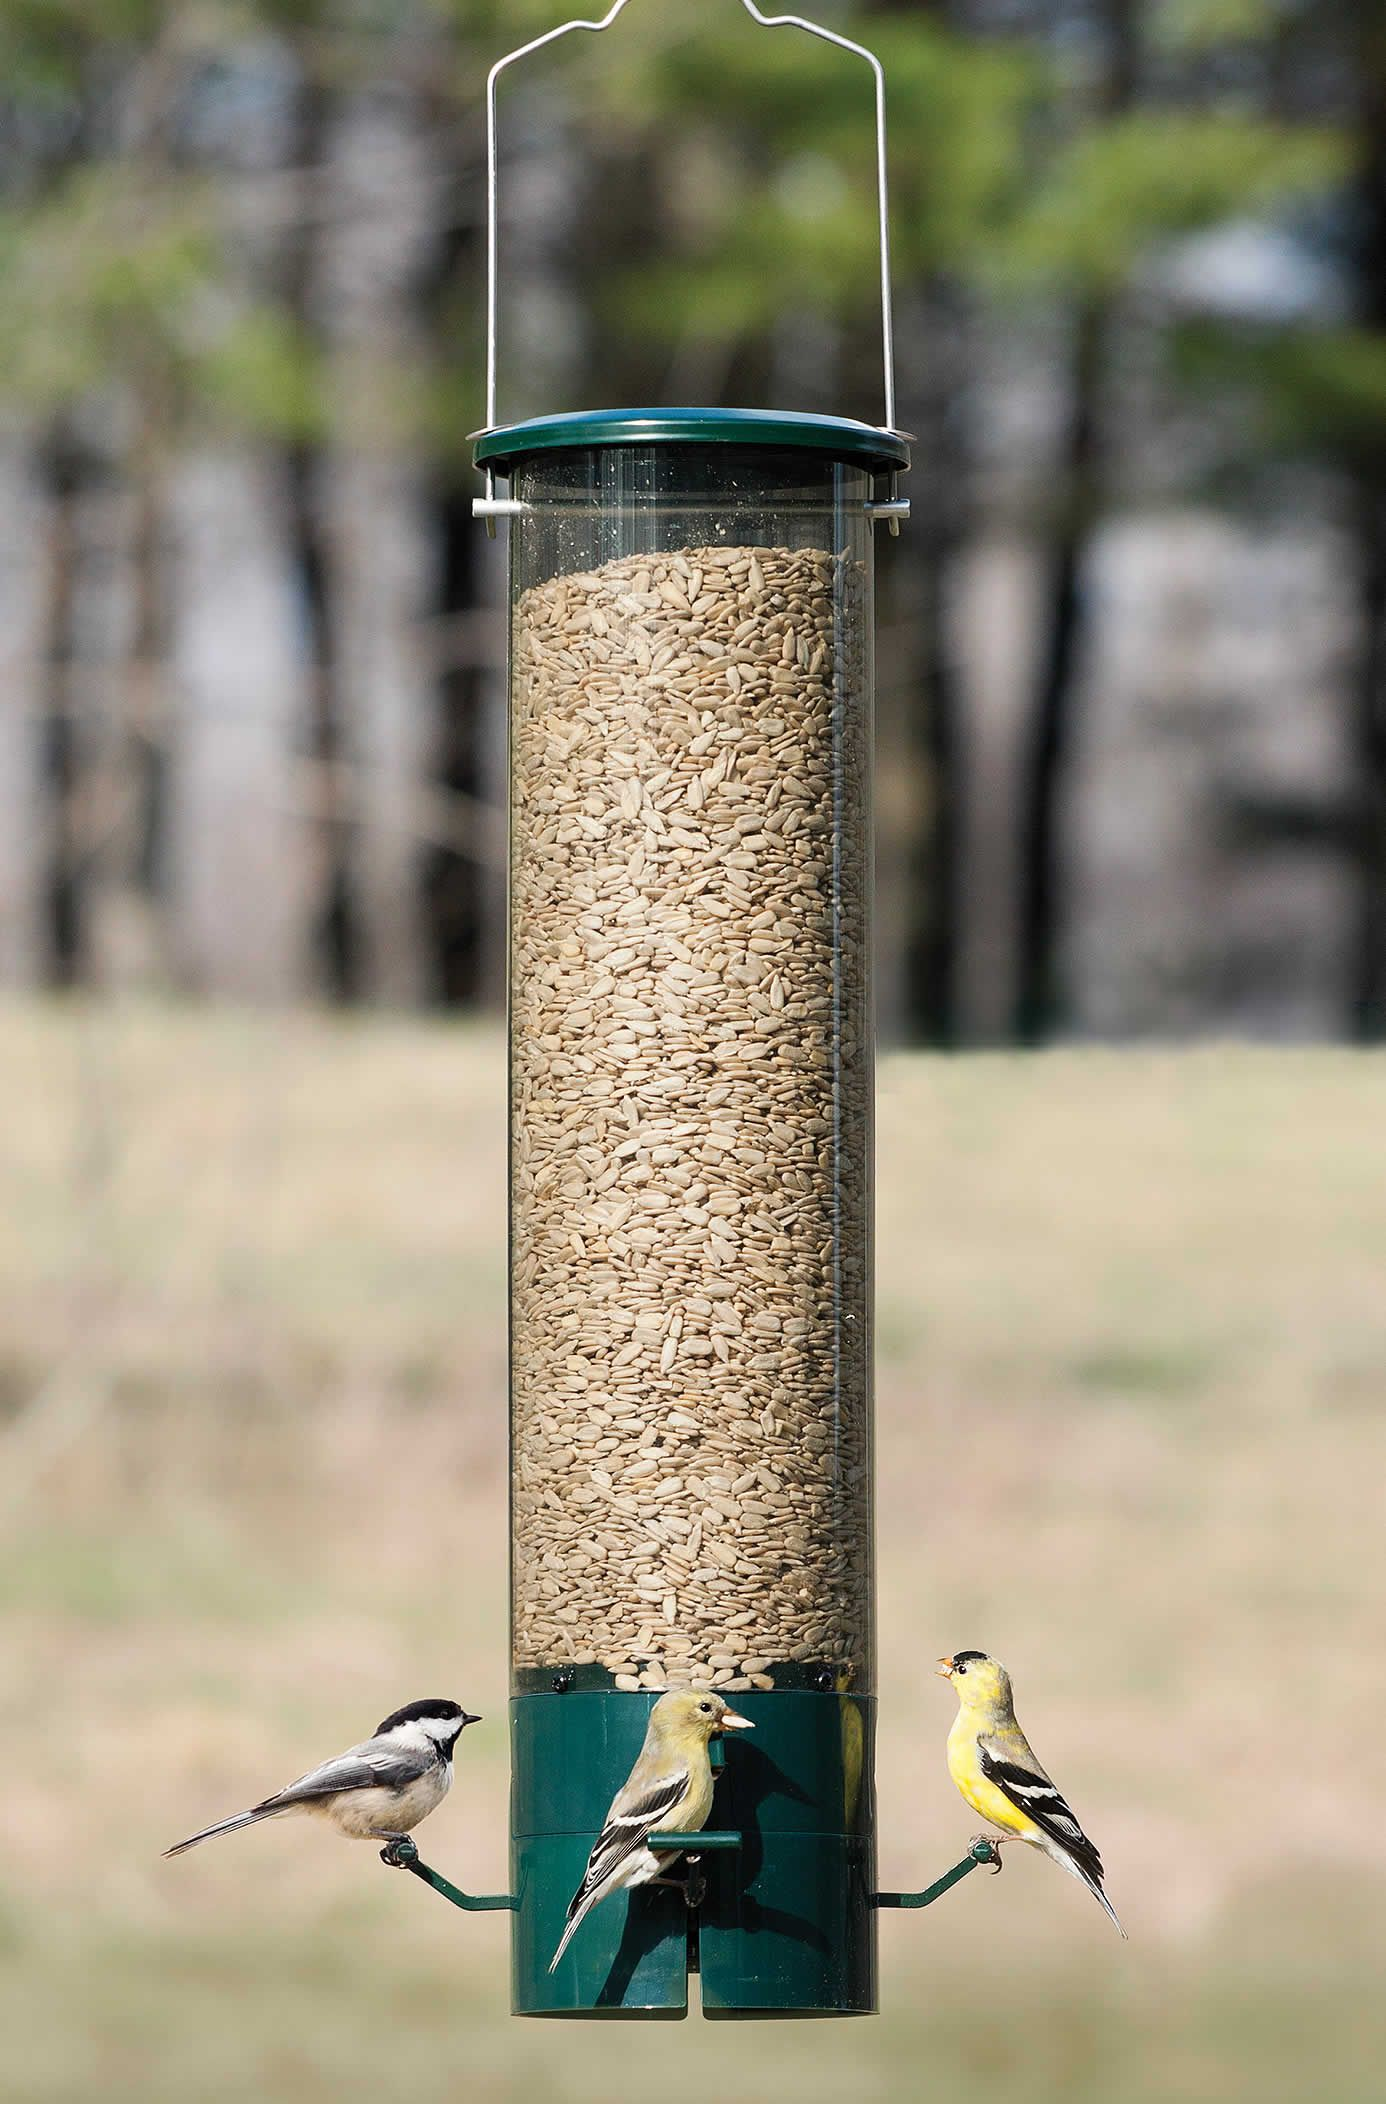 proof ii com bird squirrel absolute zoom duncraft feeder